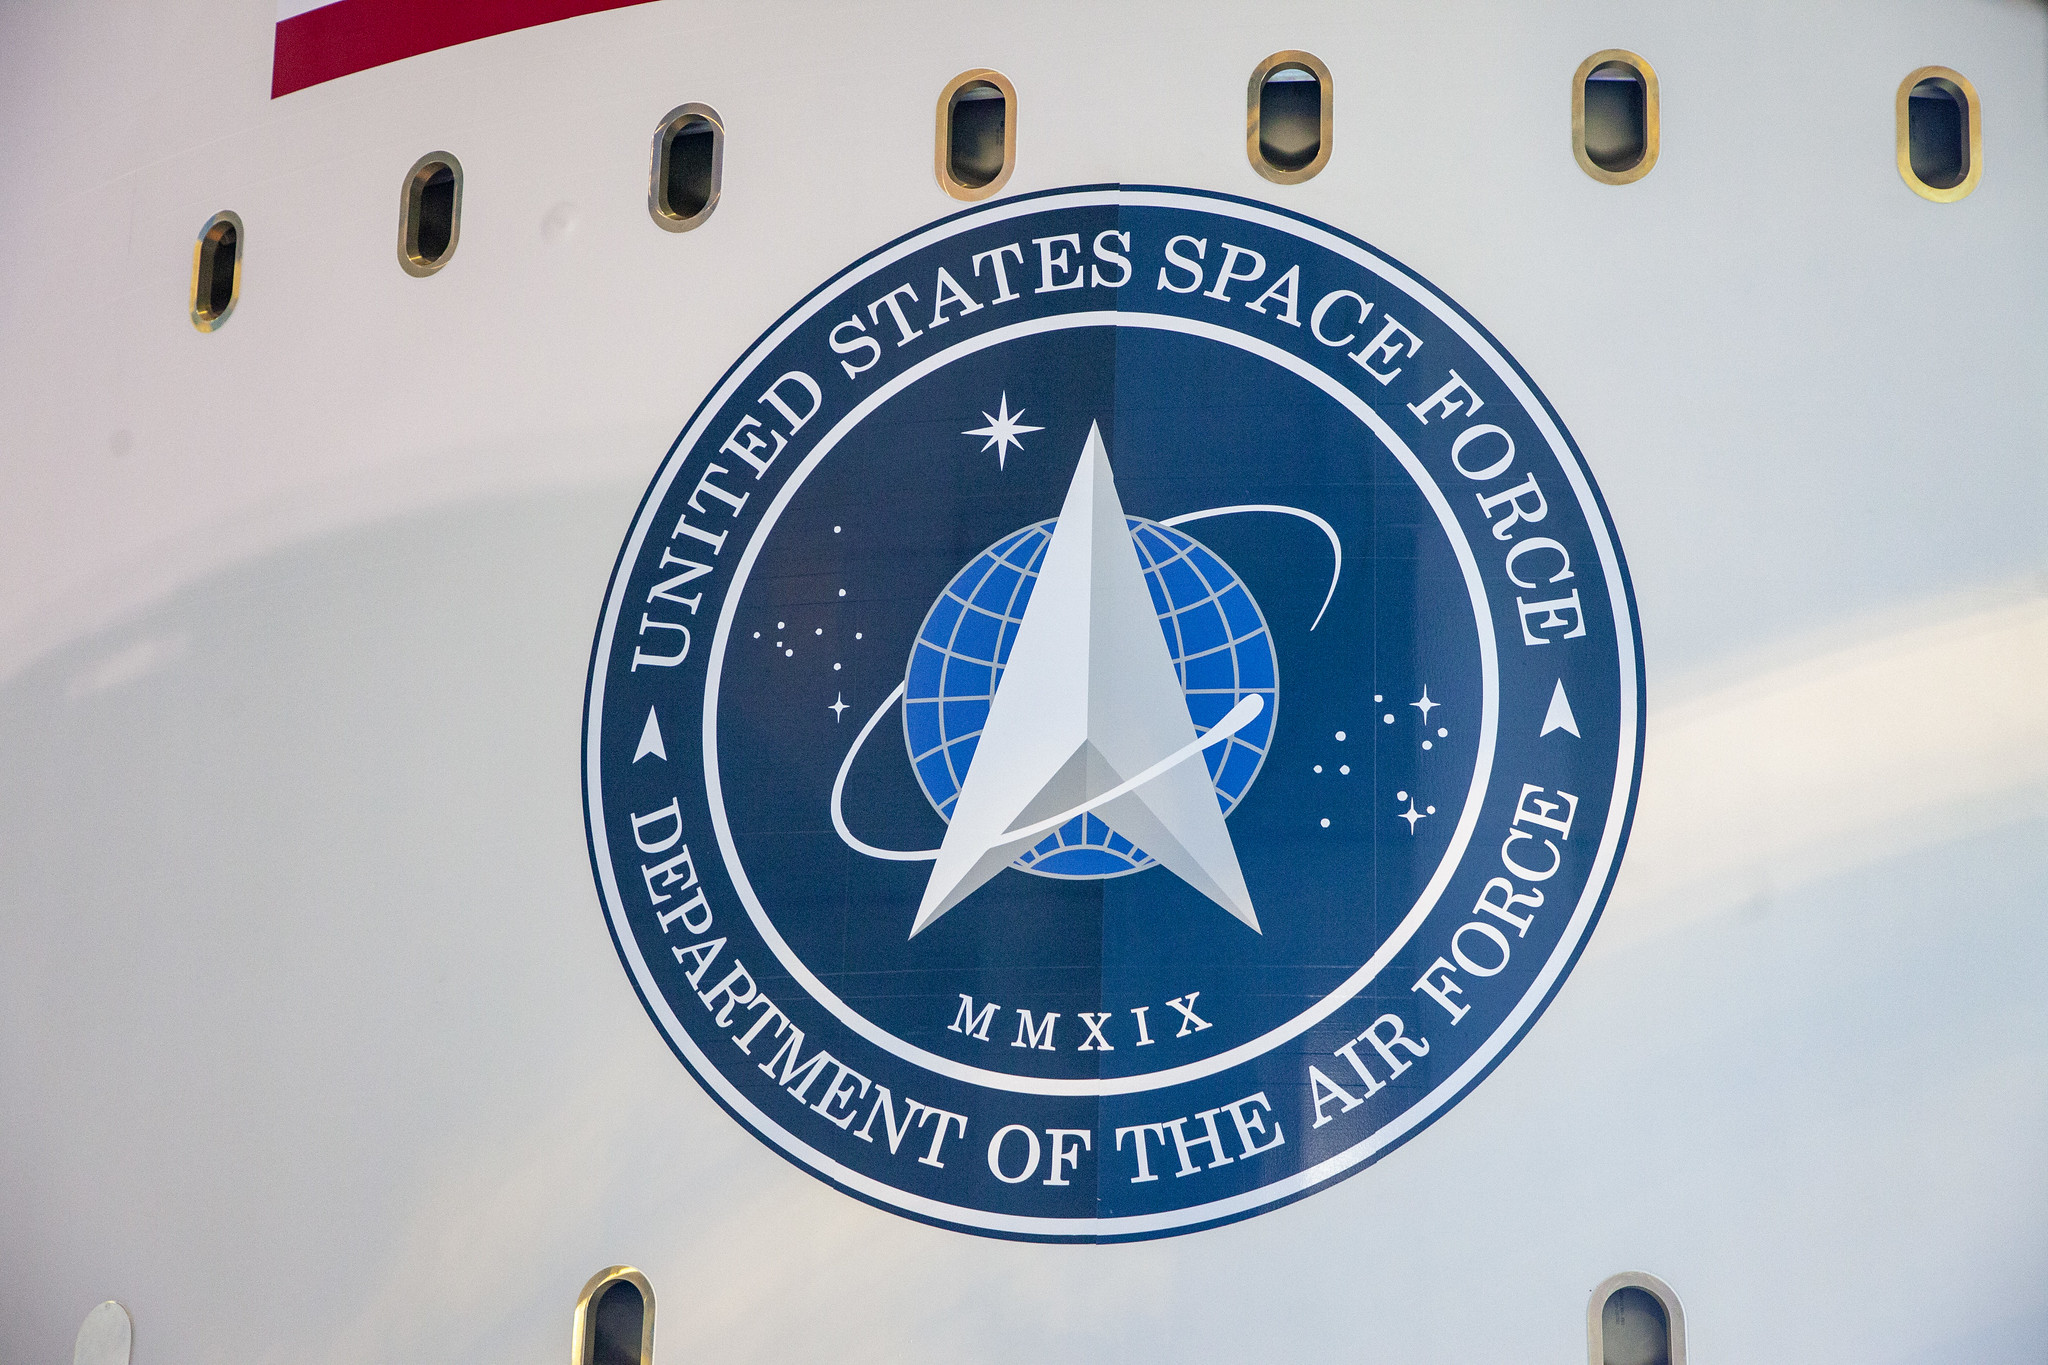 The logo of the U.S. Space Force is seen on the side of United Launch Alliance's Atlas V rocket at Cape Canaveral Air Force Station, Florida. (United Launch Alliance)